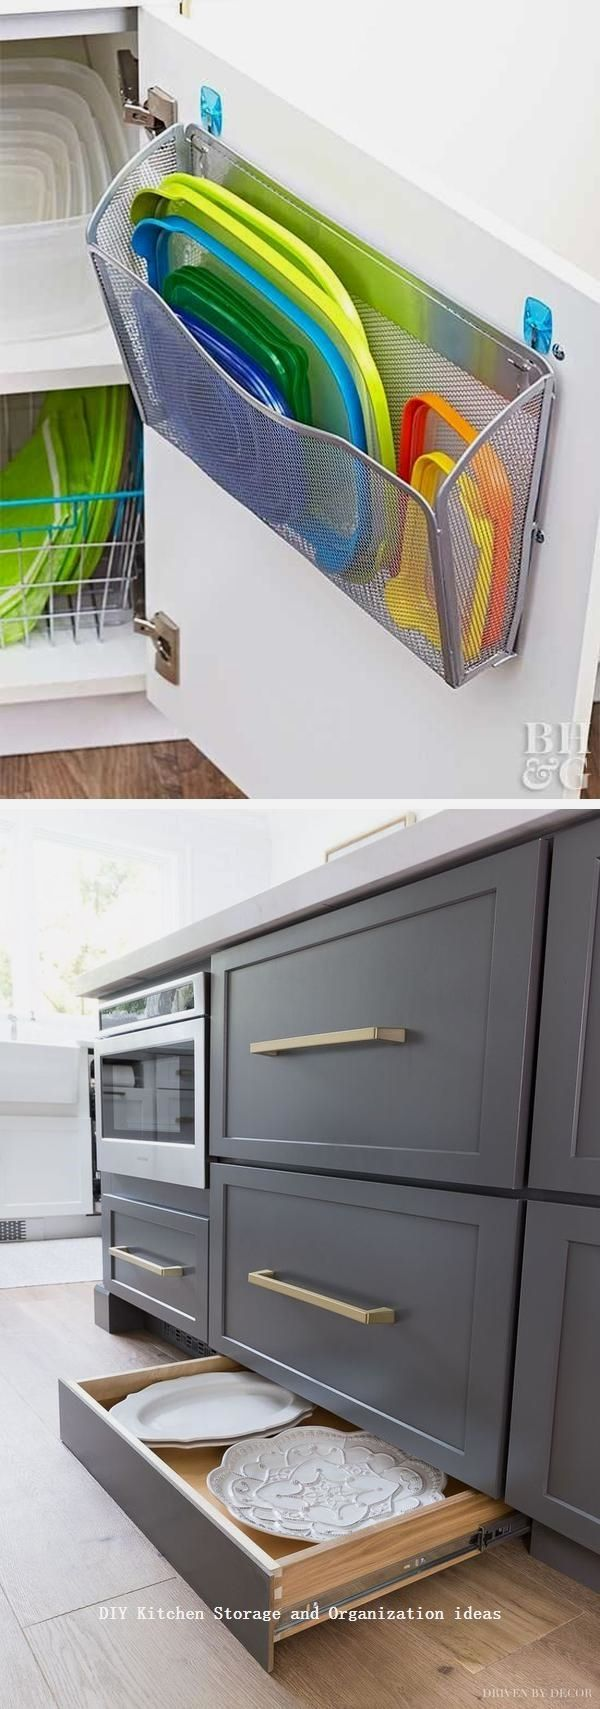 Stauraum Küche Diy 12 Diy Kitchen Storage Ideas For More Space In The Kitchen #diykitchen | Stauraum, Küchenorganisation, Ideen